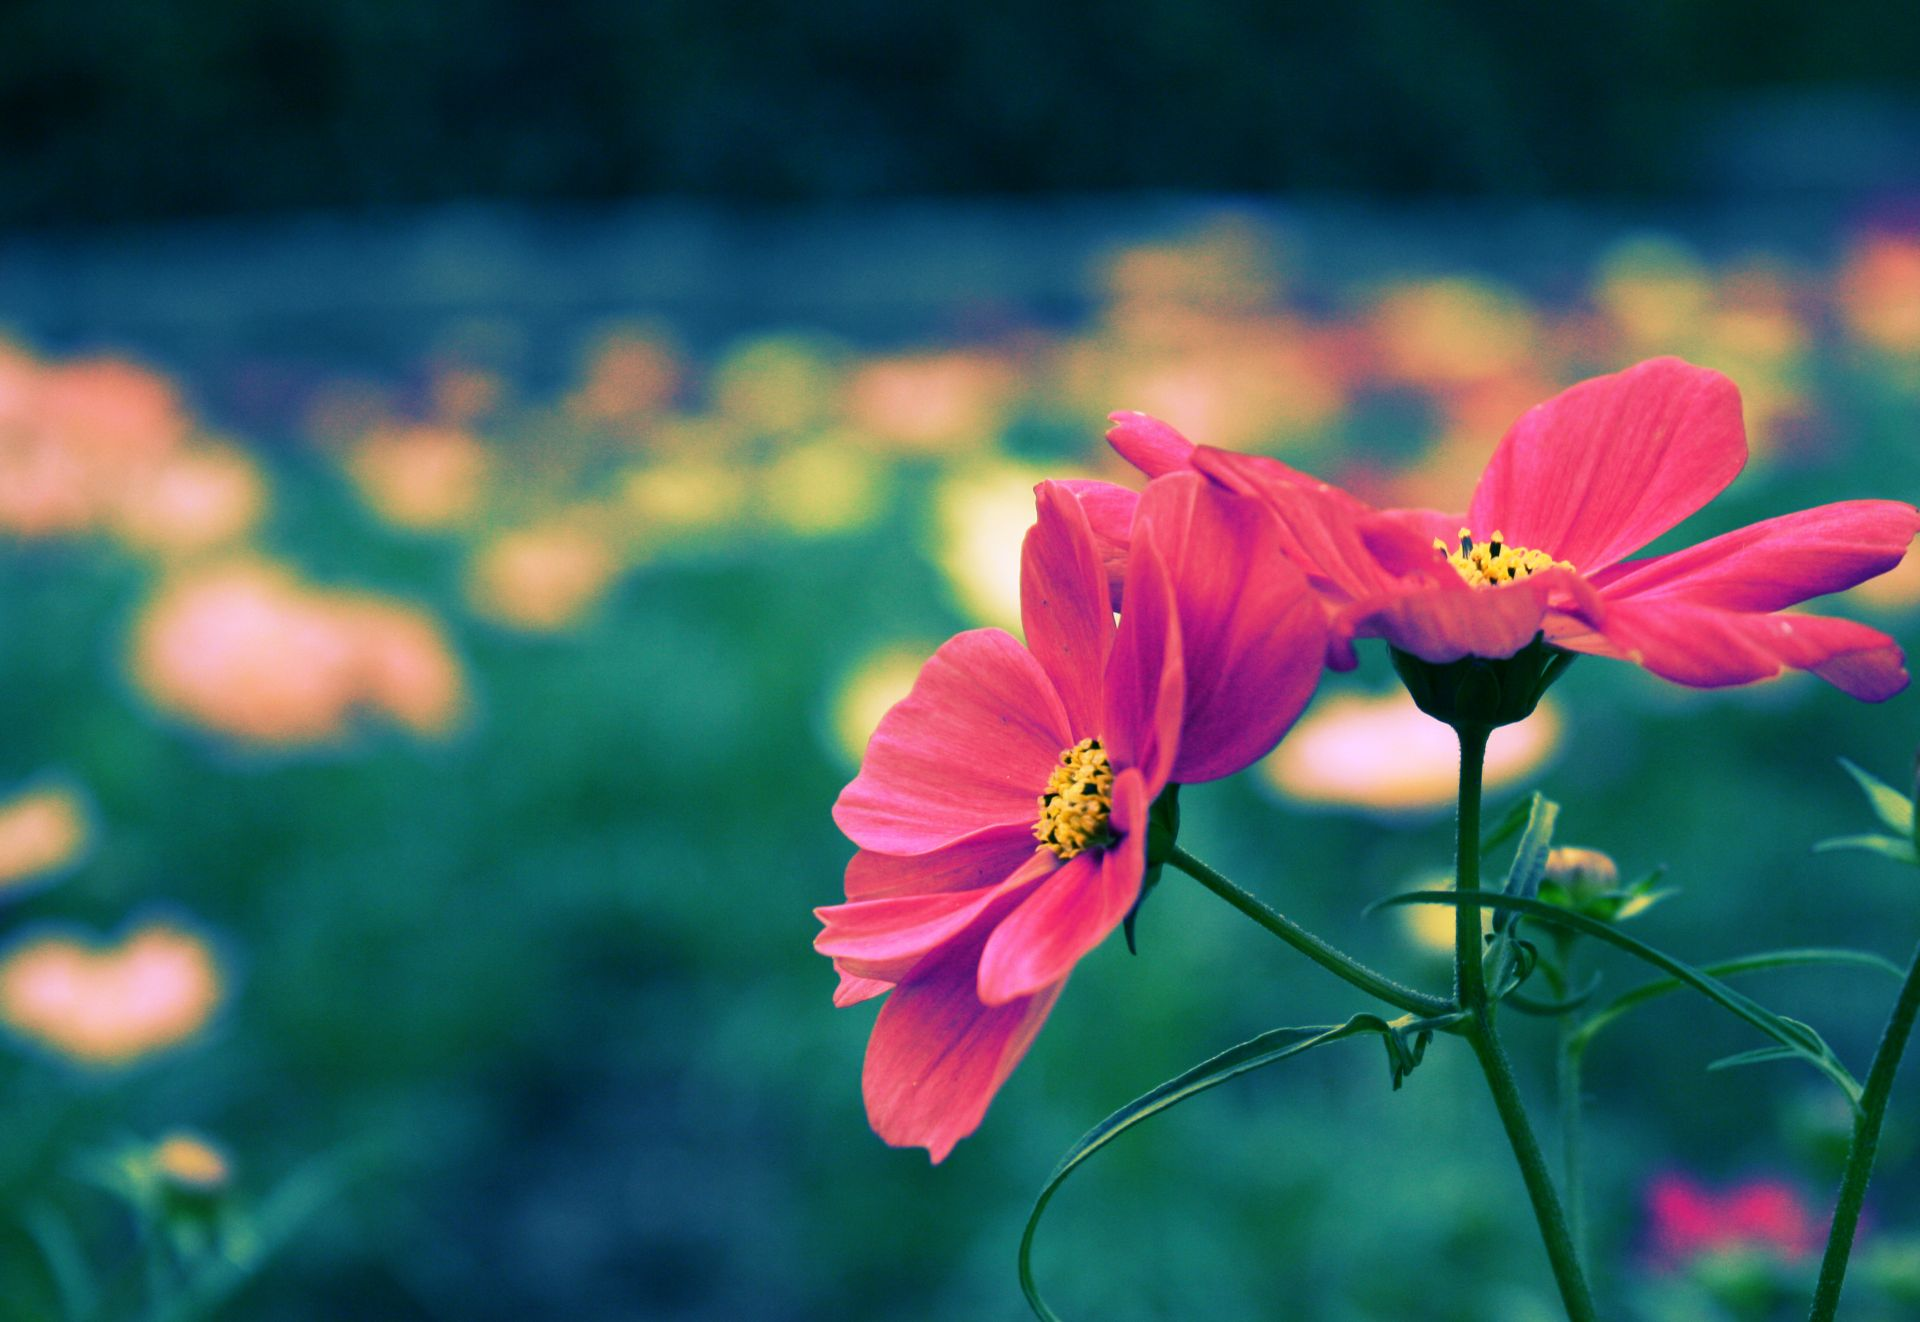 Pretty Flowers Images Hd Flowers Healthy